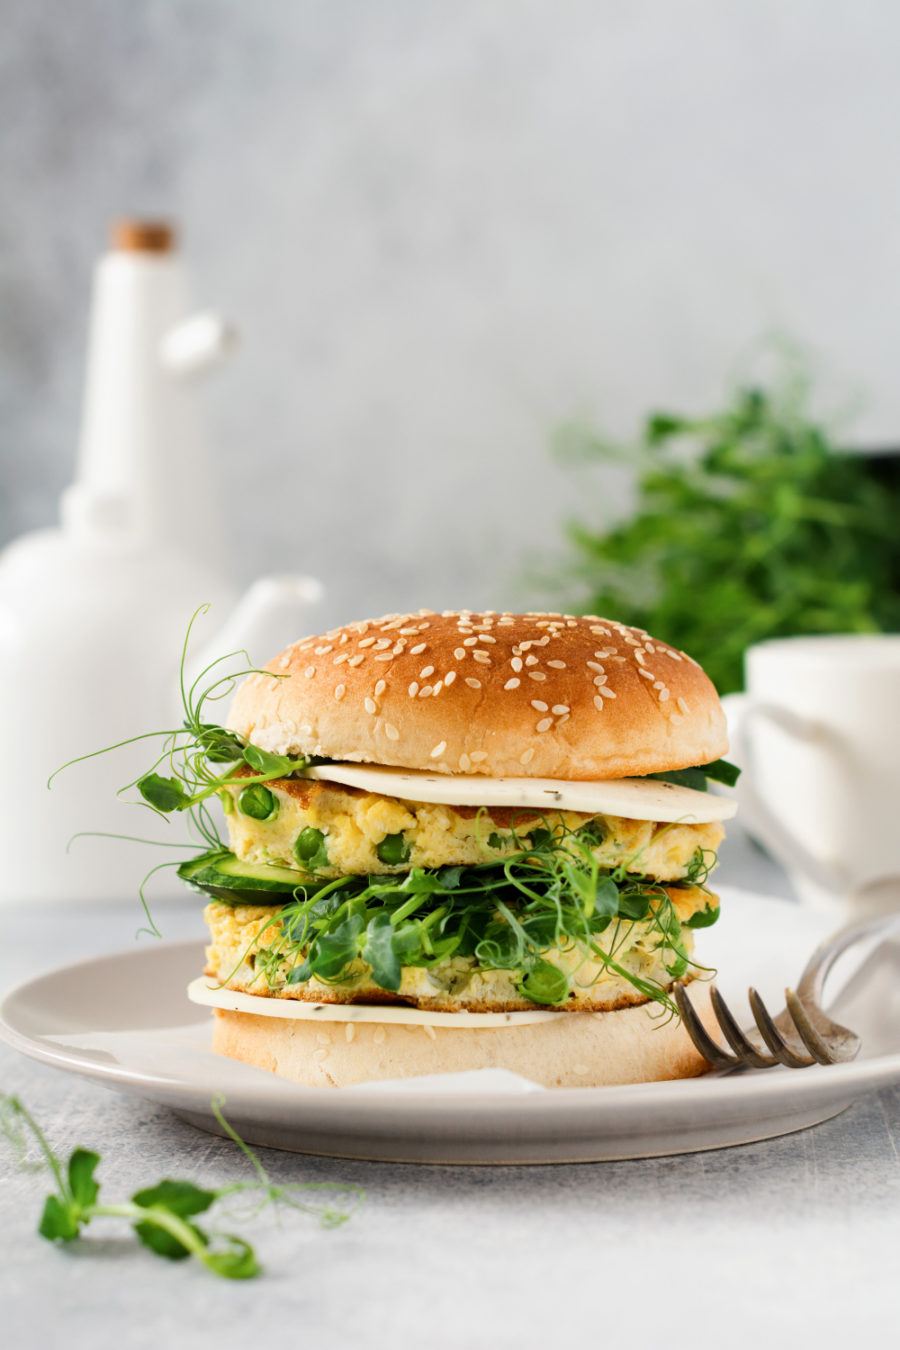 Healthy vegetarian burger with egg and pea shoots and seeds microgreen, fresh salad, cucumber slice on a cutting wooden board on light background. Meatless Monday Recipes